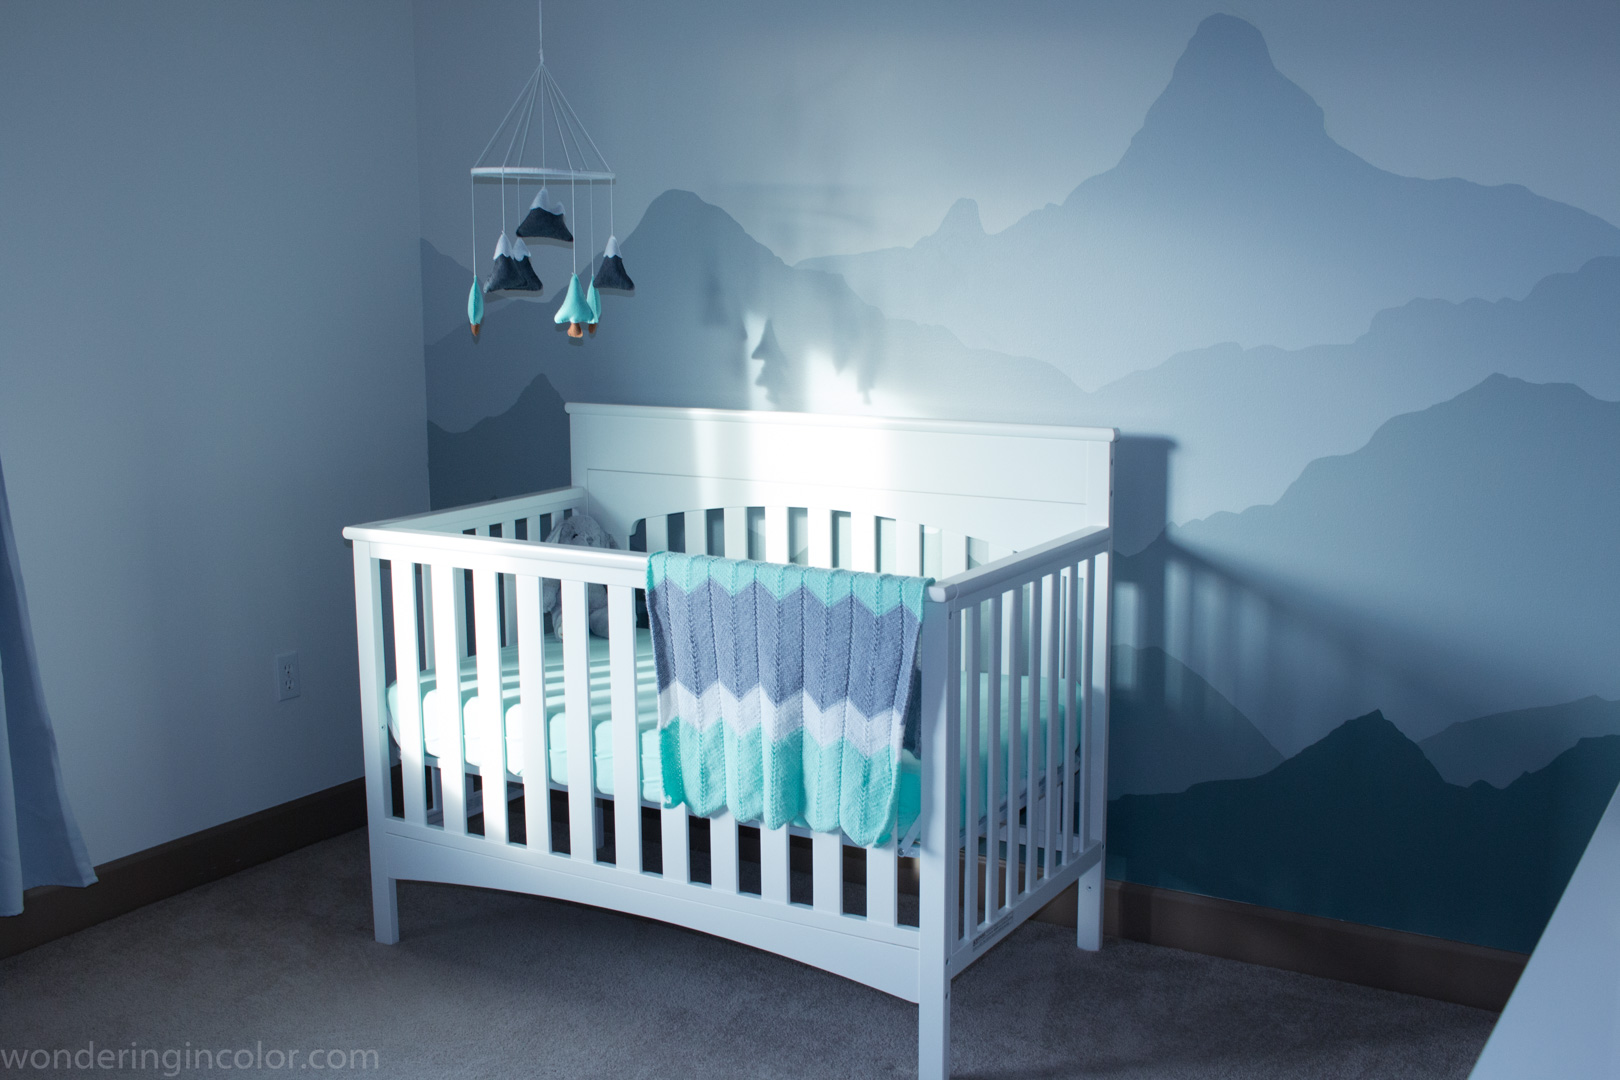 Pacific-northwest-inspired-nursery-styling (13 of 14).jpg